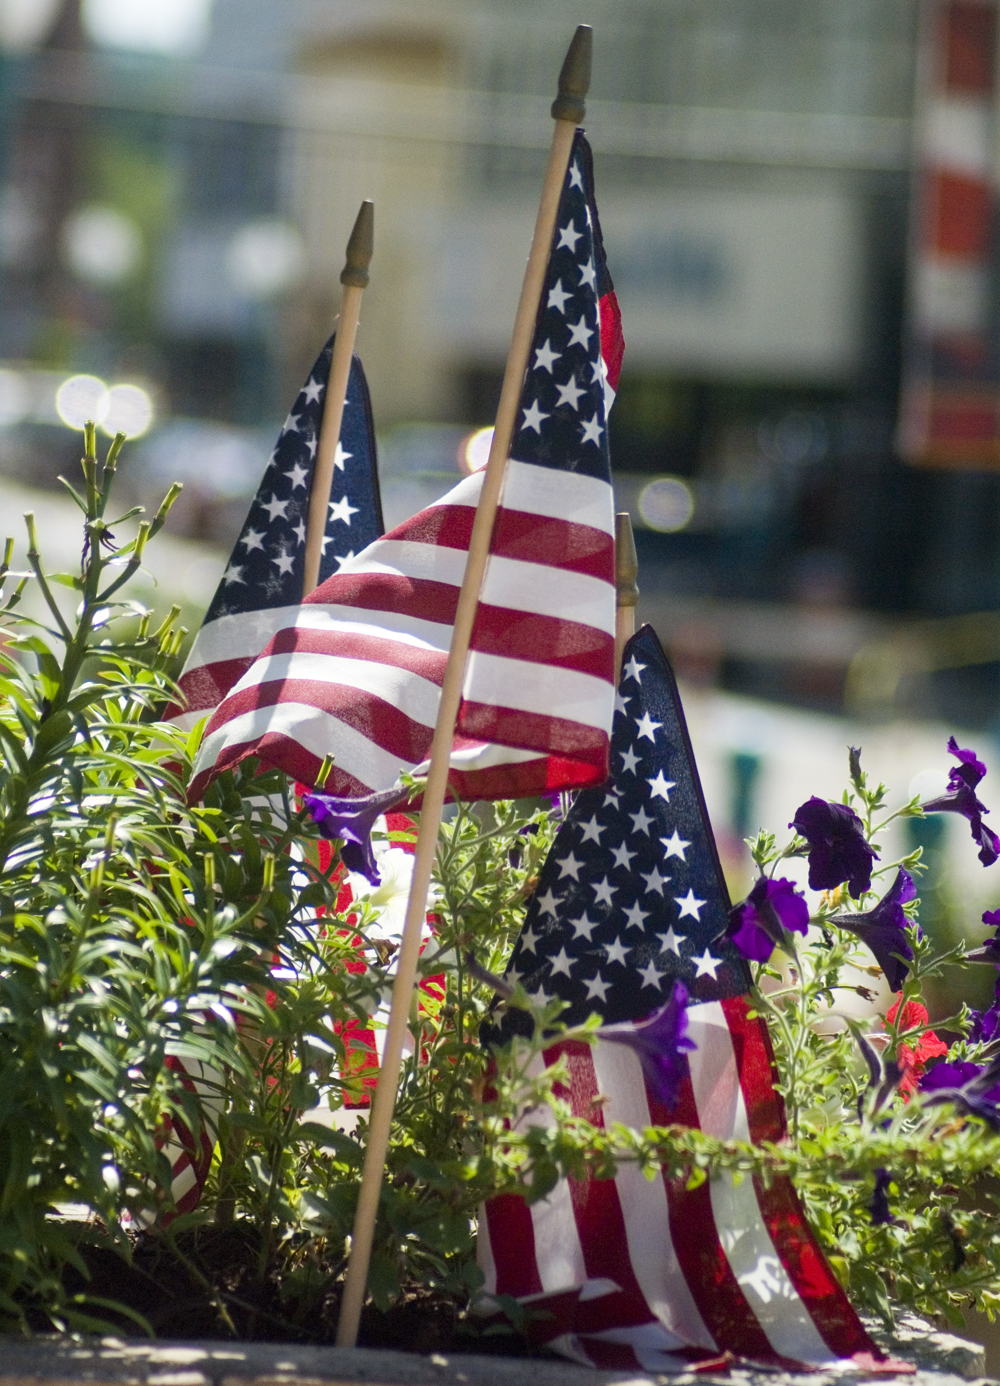 Flags and flowers.